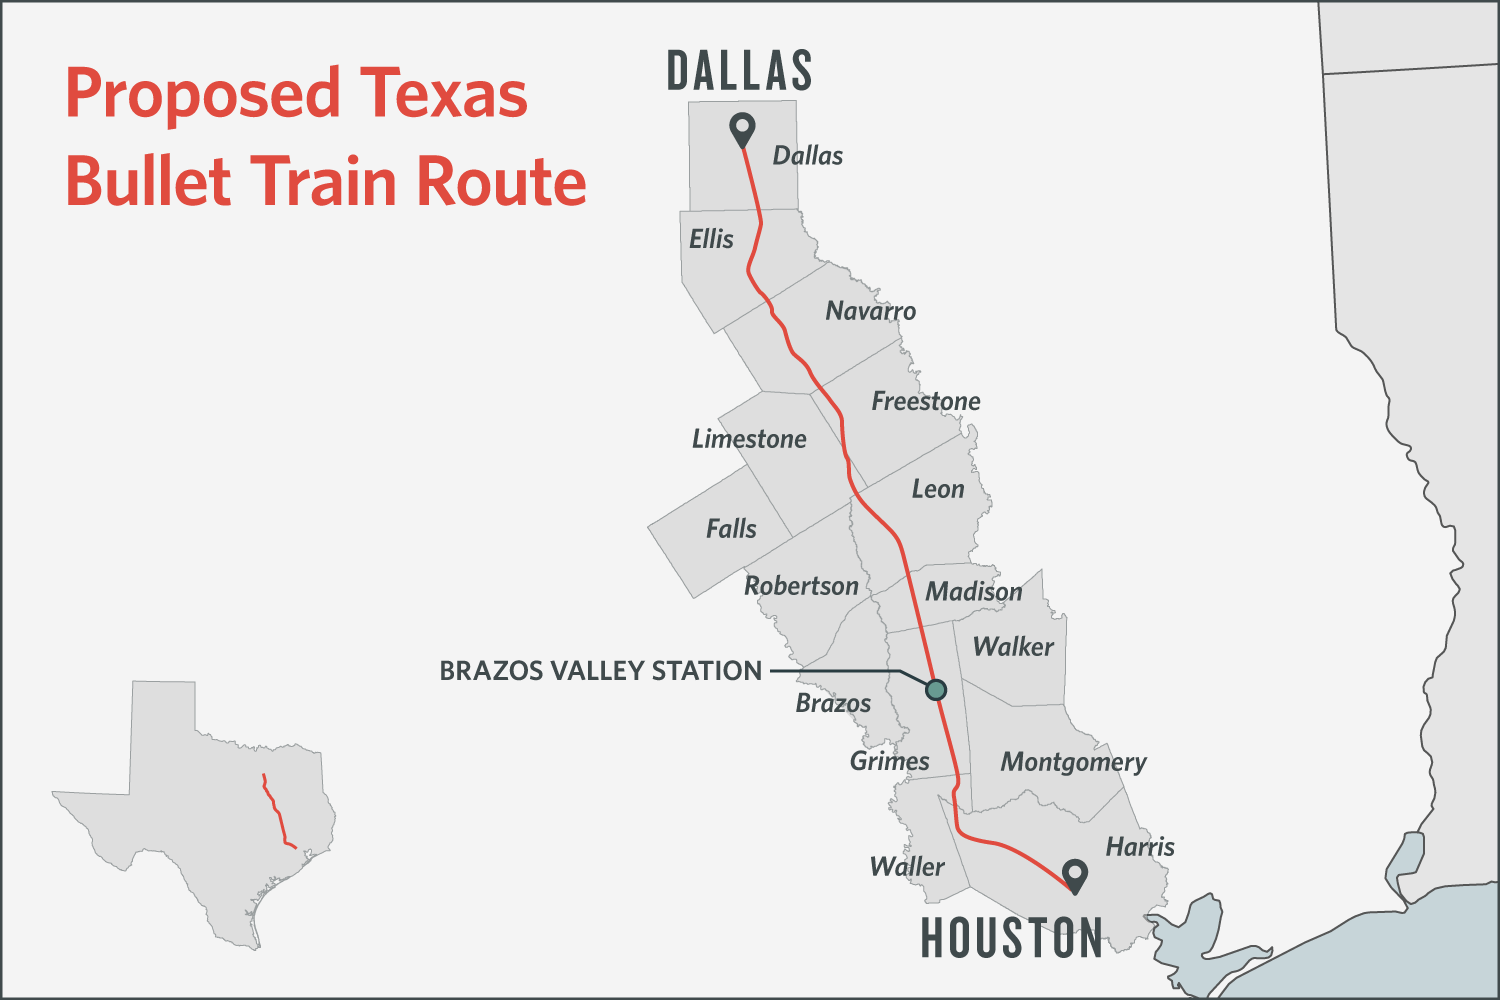 Central Texas Partners in December released this map showing the likely route of a high-speed rail line between Dallas and Houston.